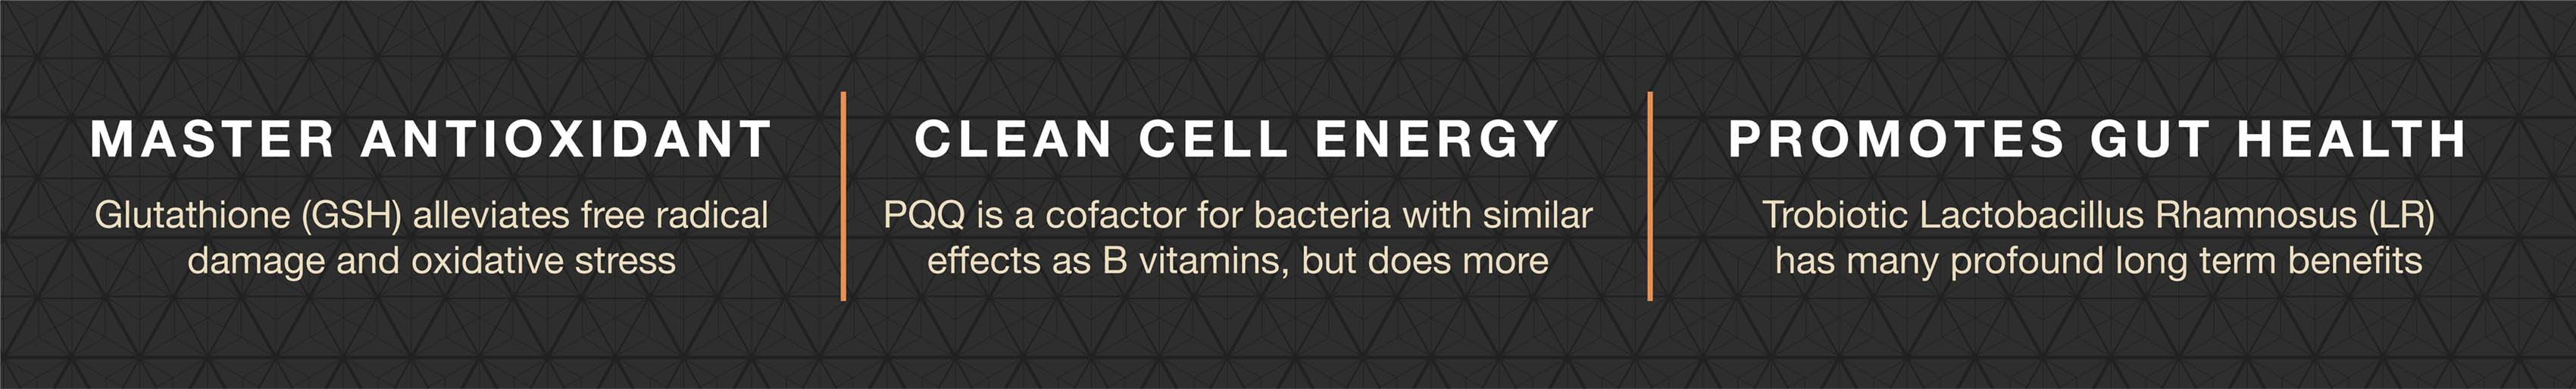 ReGenesis contains Glutathione, a master antioxidant, with PQQ for cell energy and Lact. Rhamnosus to promote gut health.